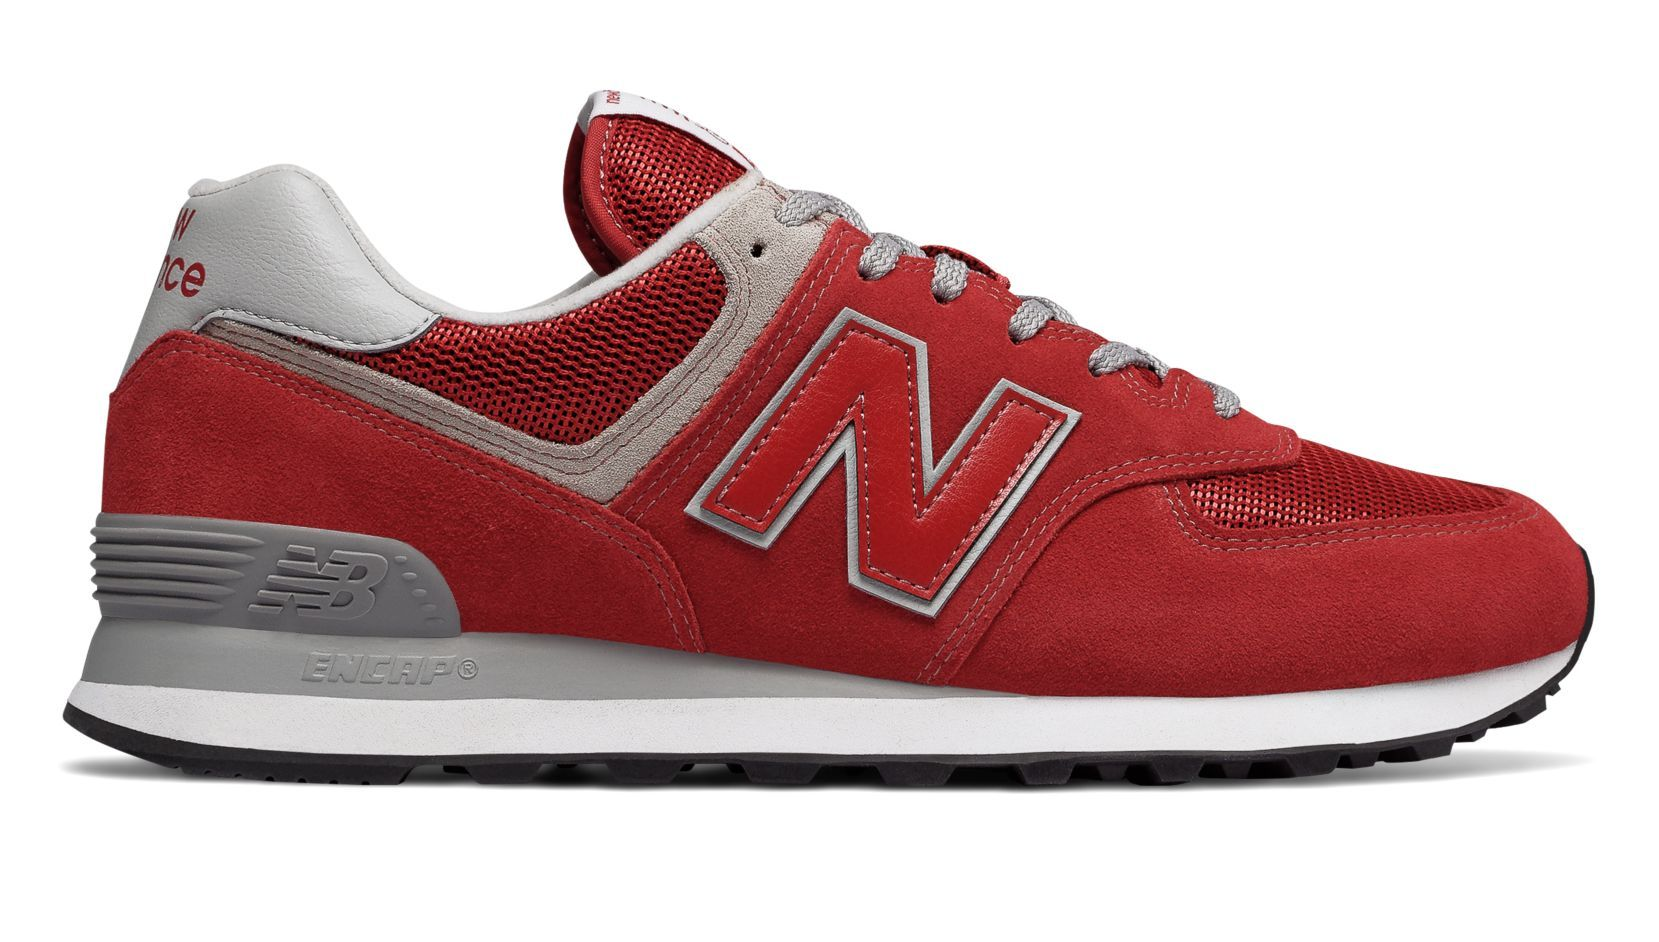 New Balance 574 Essential Pack new balance светло серые кроссовки из замши 574